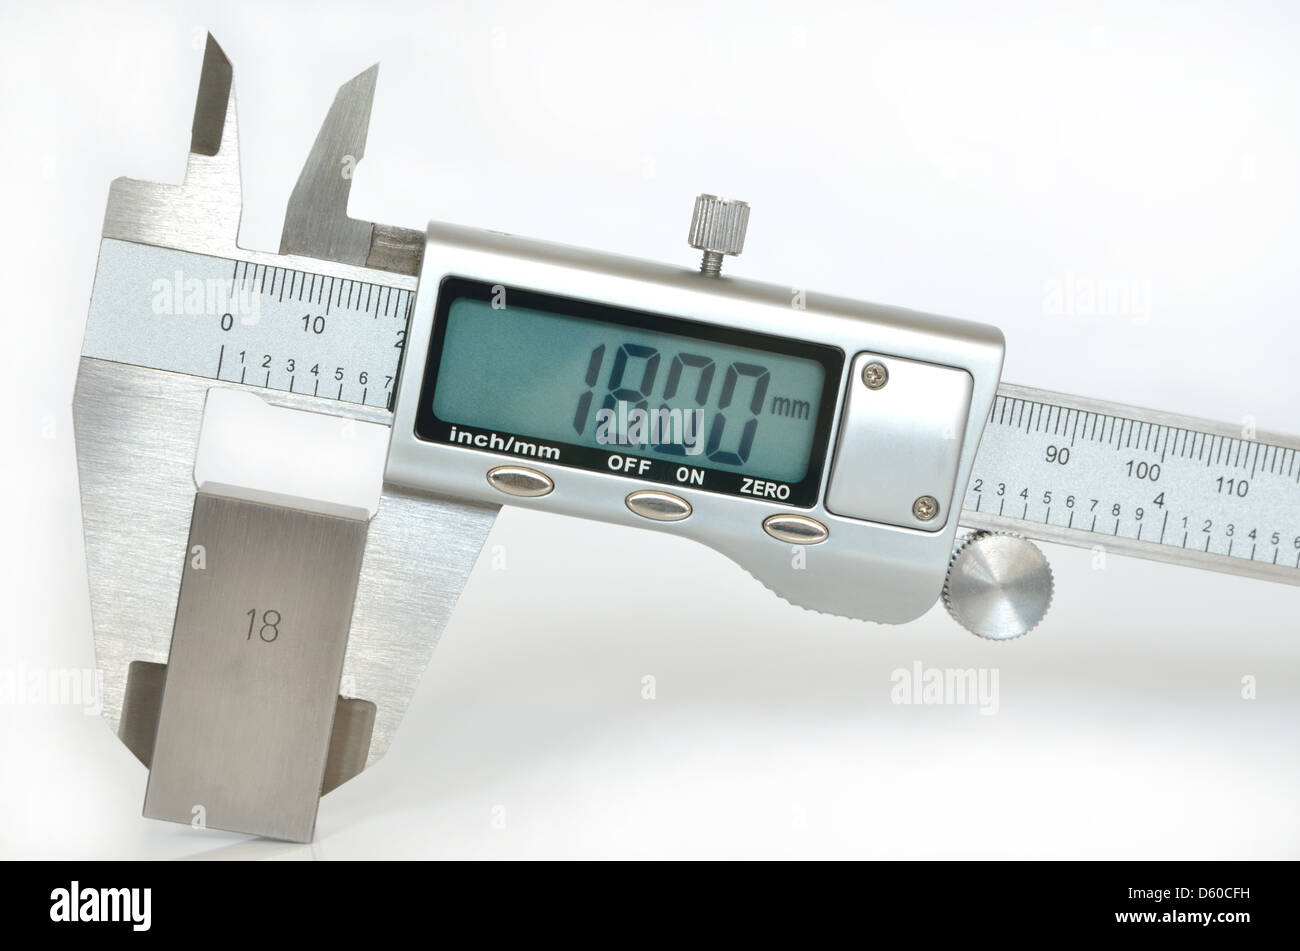 Electronic digital caliper - Stock Image